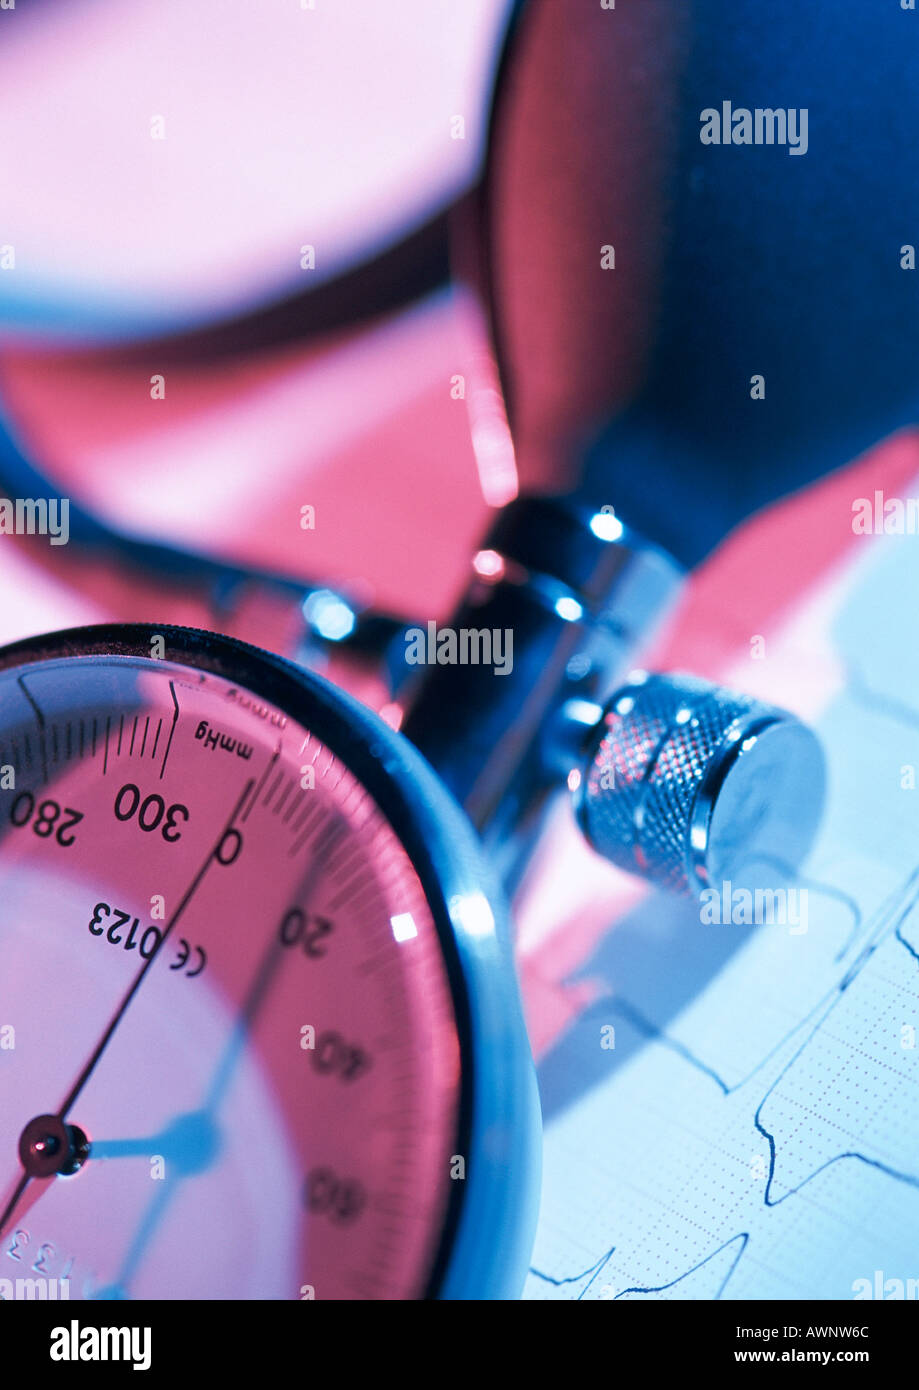 Sphygmomanometer (instrument for measuring blood pressure), partial view, close-up - Stock Image